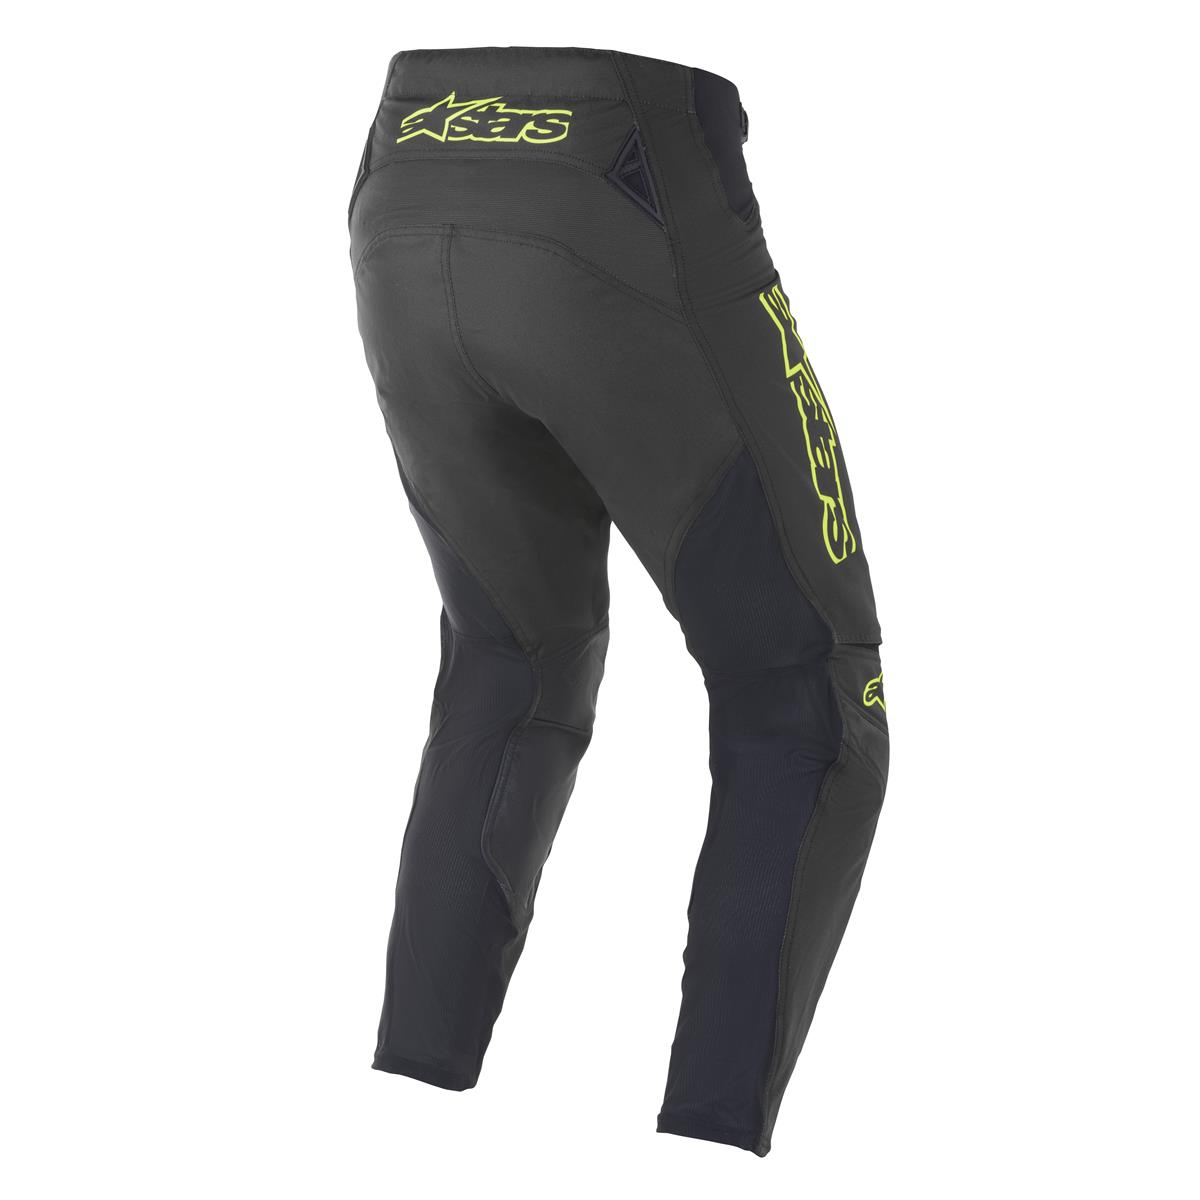 3721021 155 2021 Alpinestars Techstar Factory Pant Black Yellow Fluo MotoCross Broek Hose Pantalon